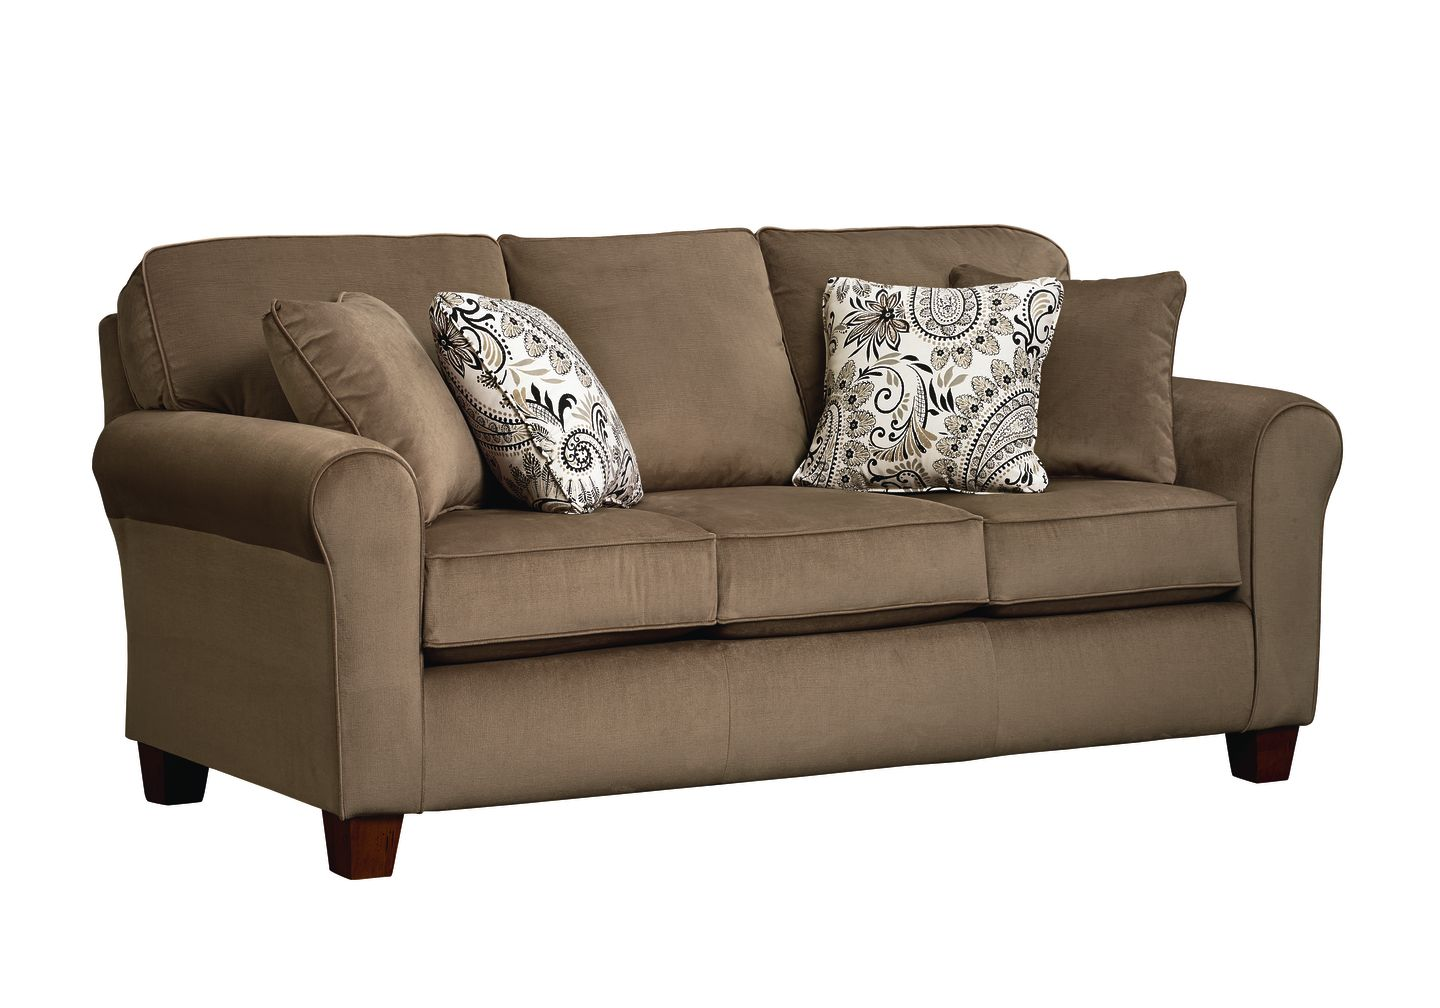 Best Home Furnishings Emily Sofa Coffee Shop Your Way Online Shopping Earn Points On